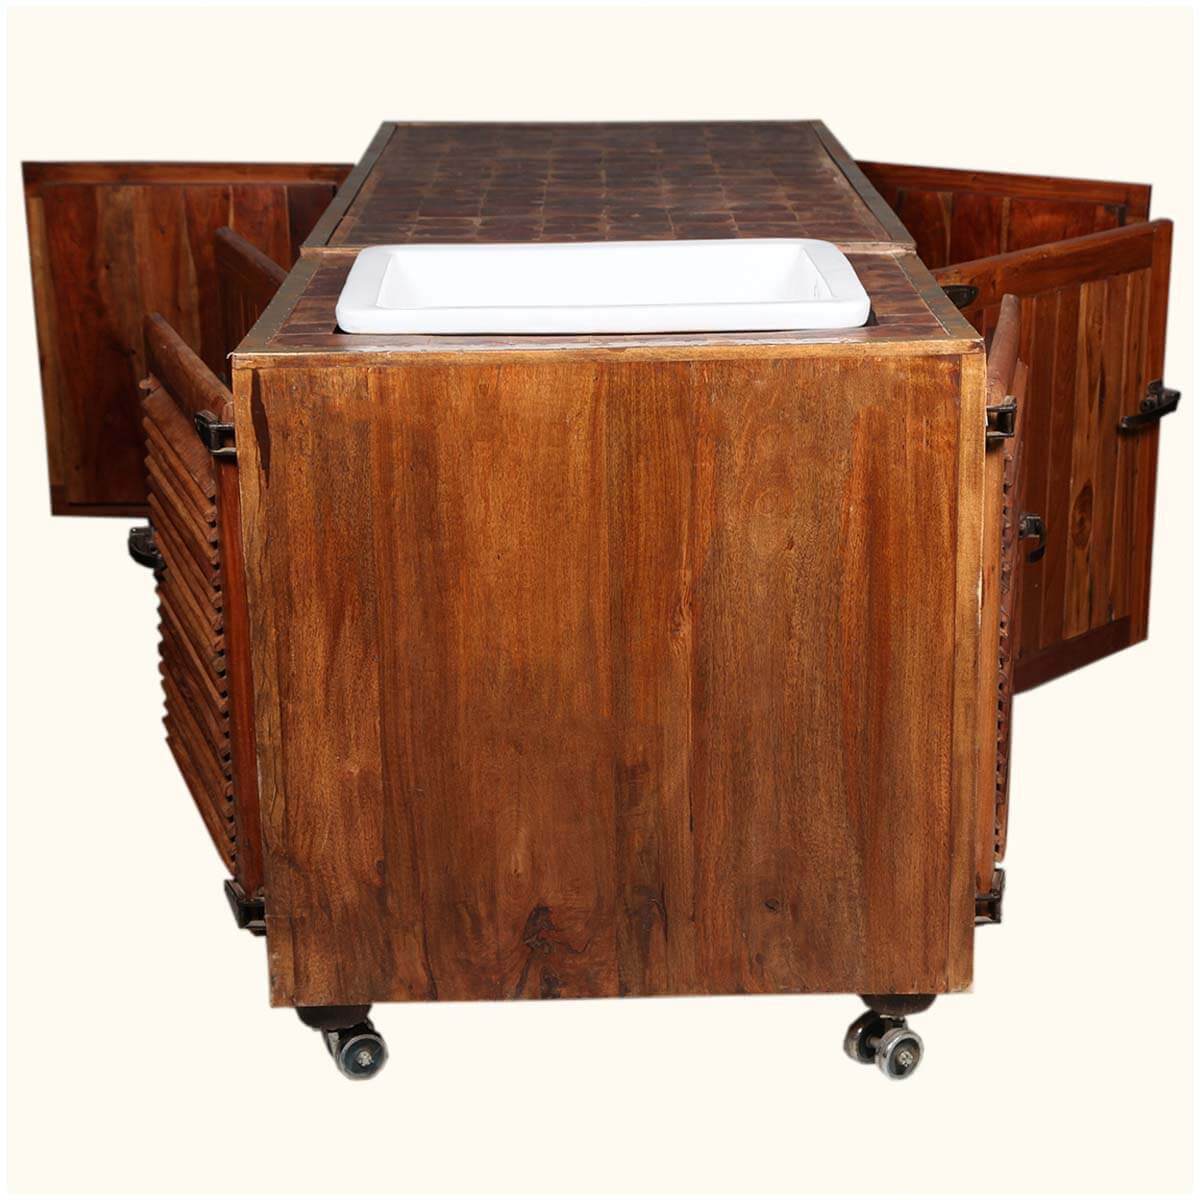 Moveable Solid Wood Ceramic Buffet Kitchen Sink Cabinet